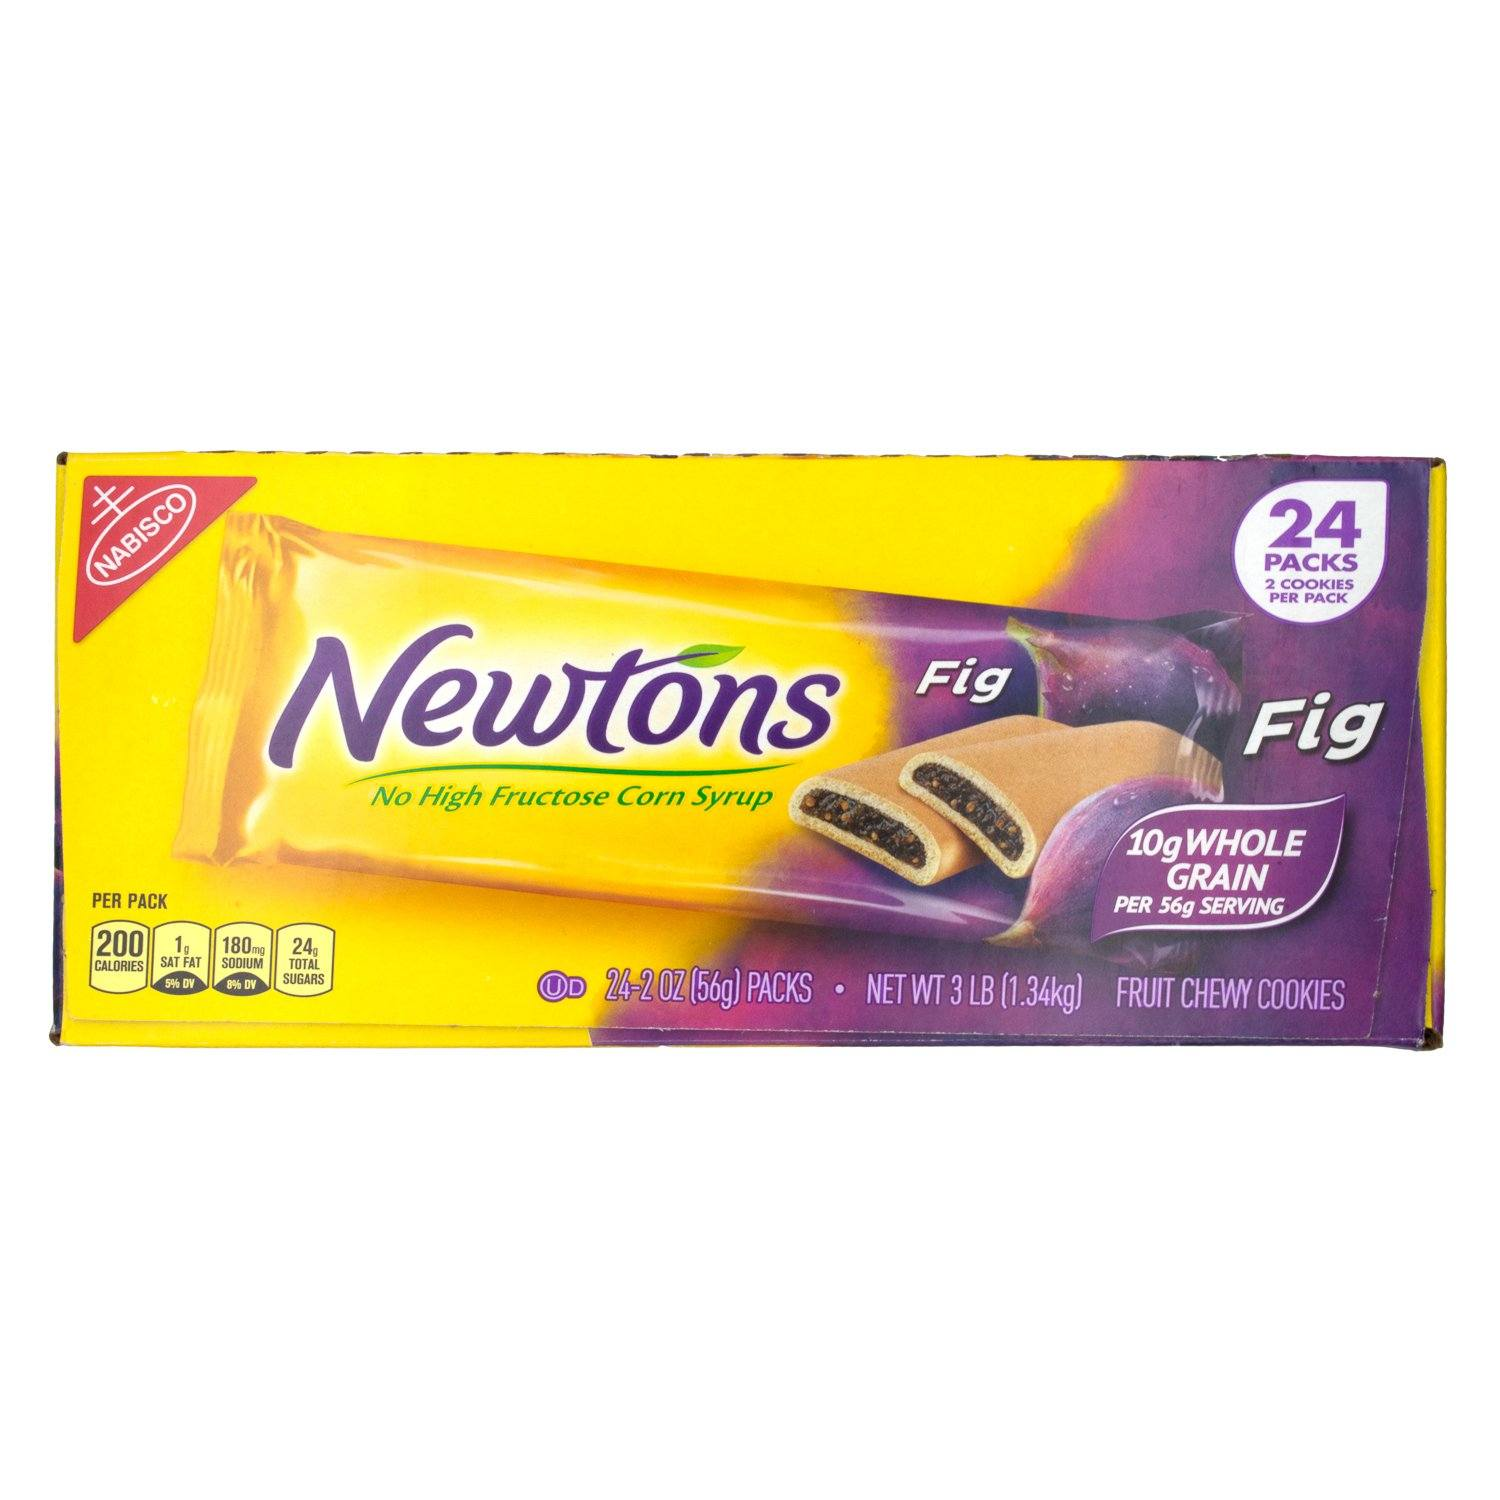 Newtons Soft and Chewy Cookies Newtons Fig 2 Oz-24 Count